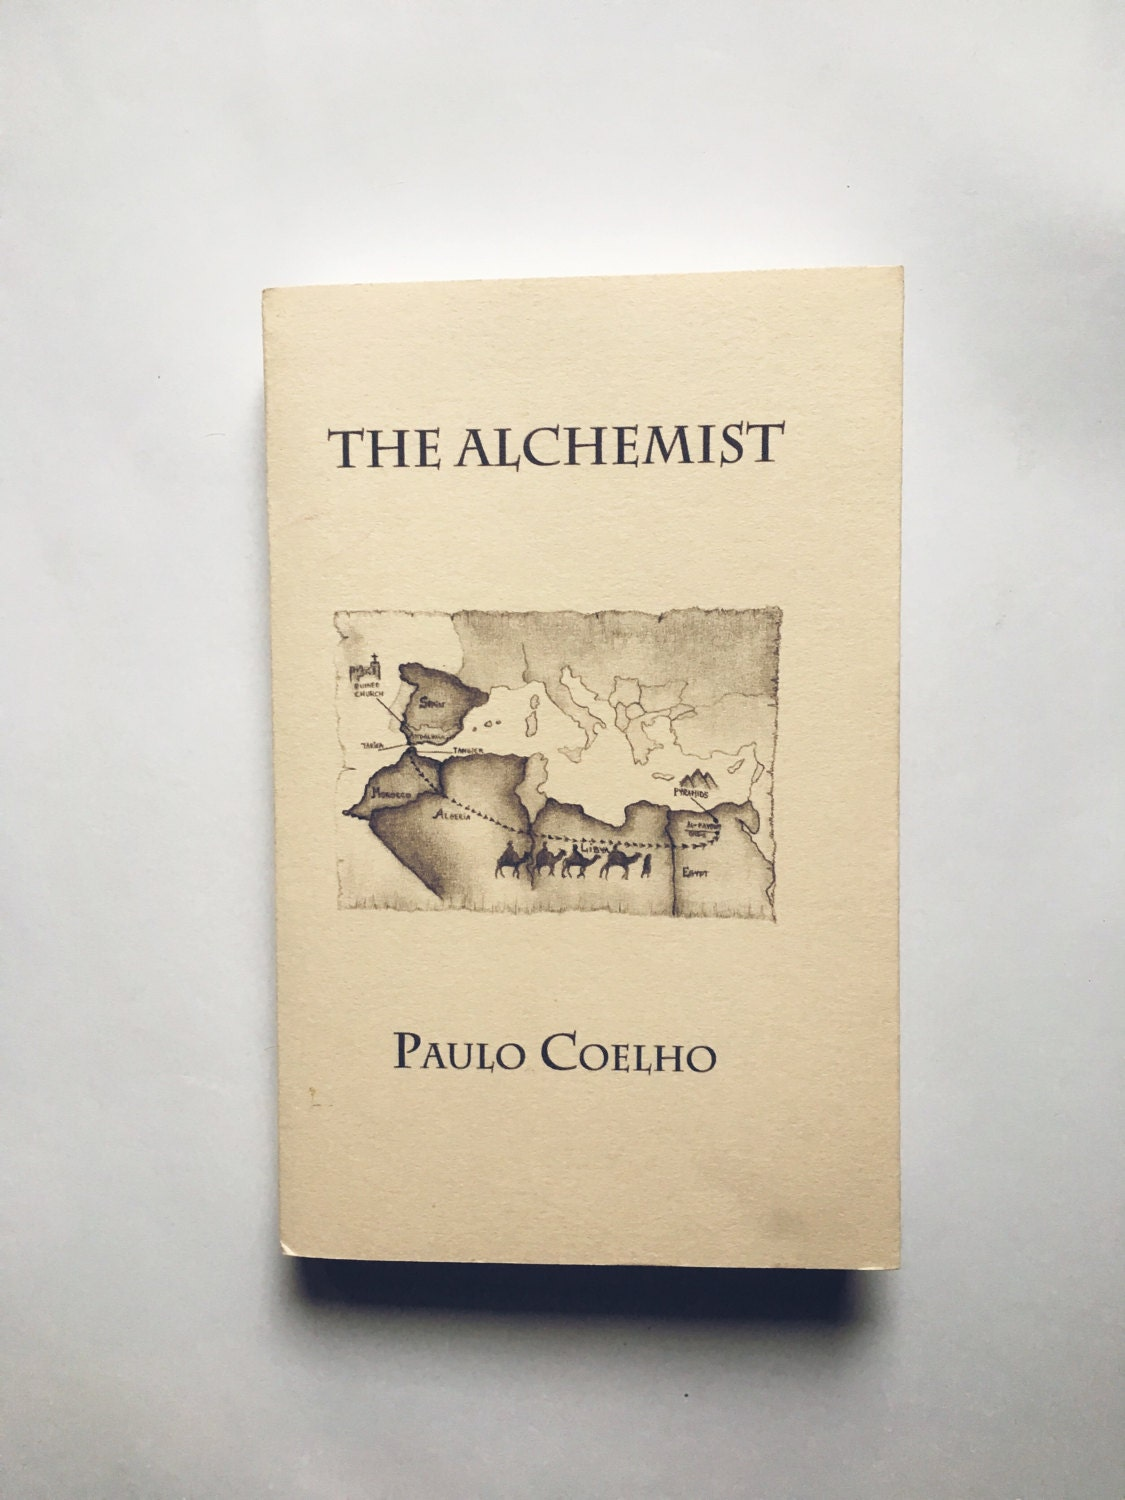 paulo coelho the alchemist personalized paulo coelho book dust jacket custom made mini stic cover art collection quote drawing library bookshelve